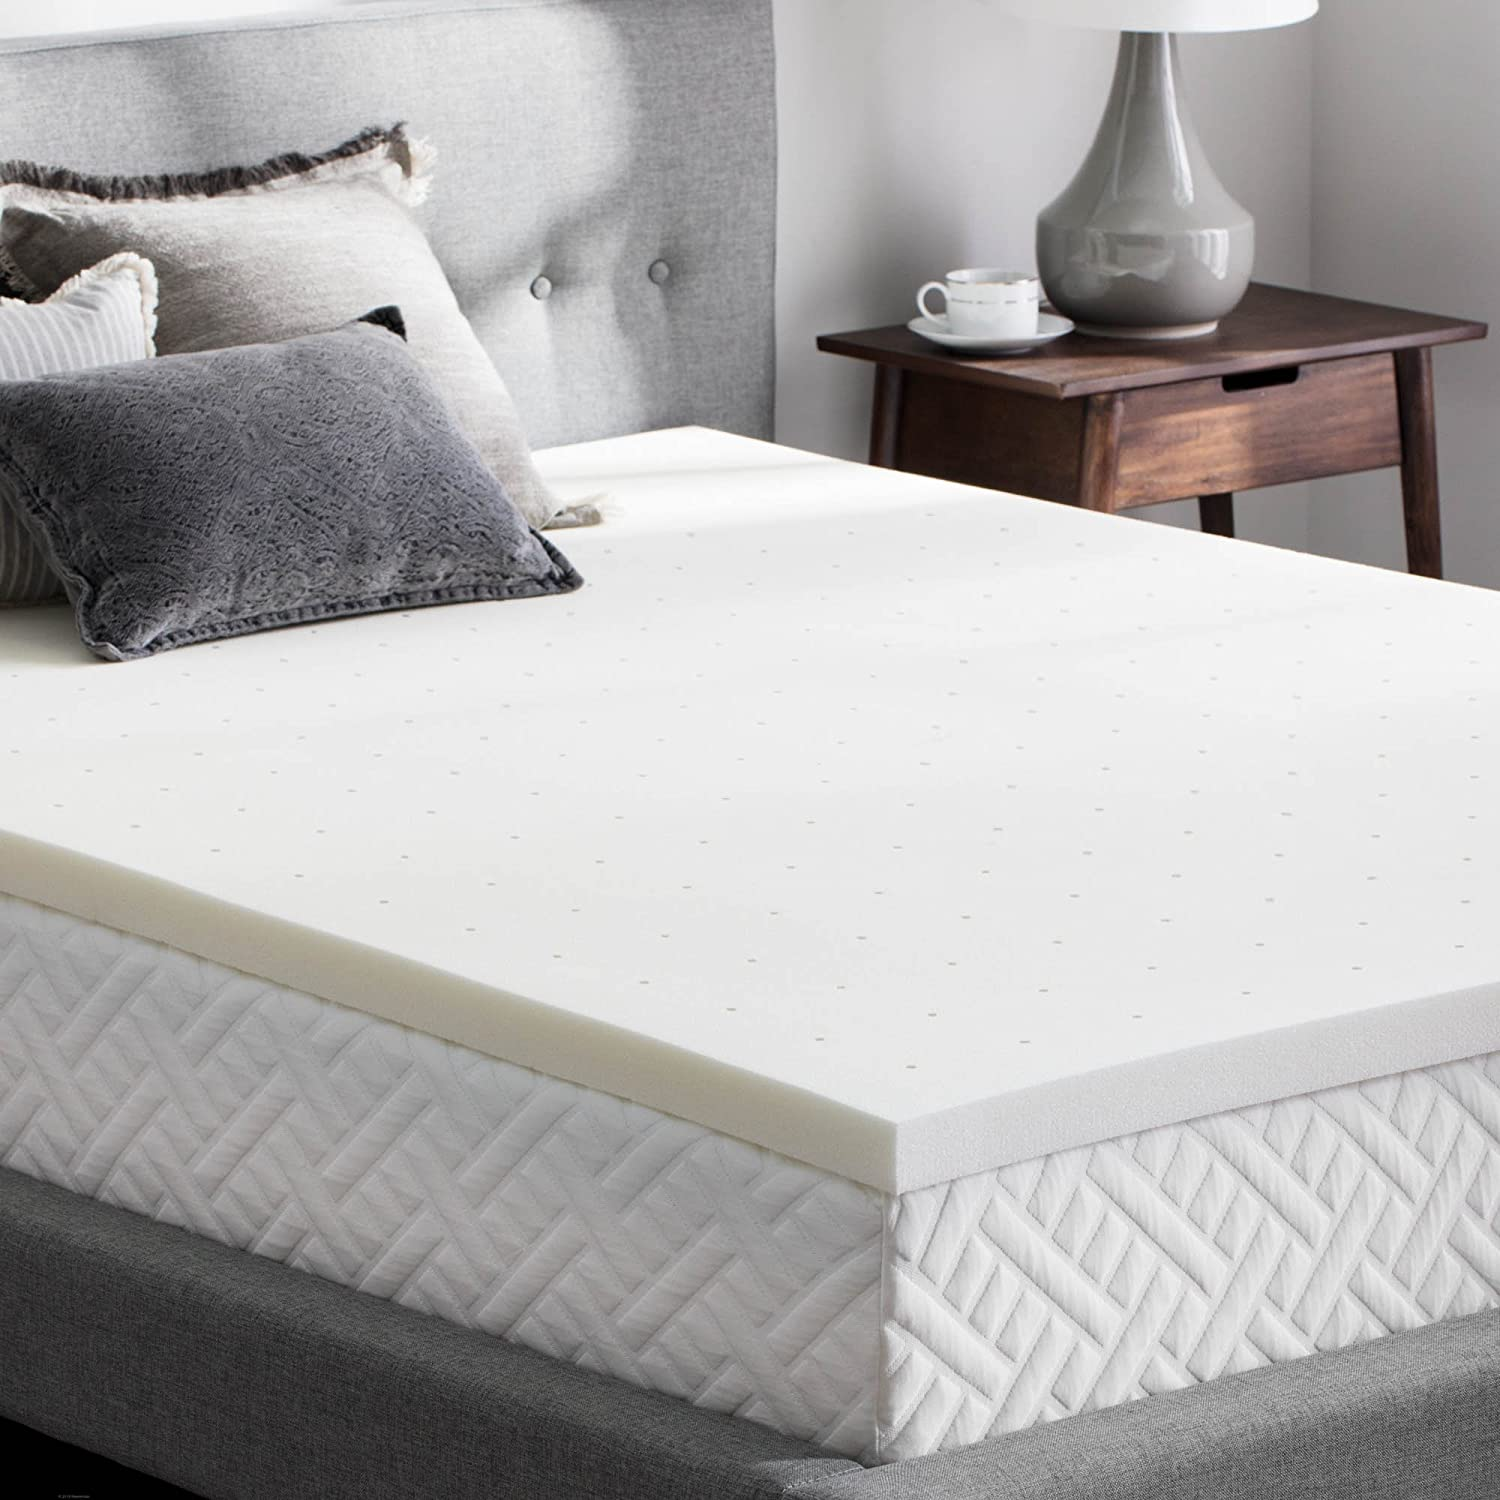 WEEKENDER 2 Inch Memory Foam Mattress Topper – Full